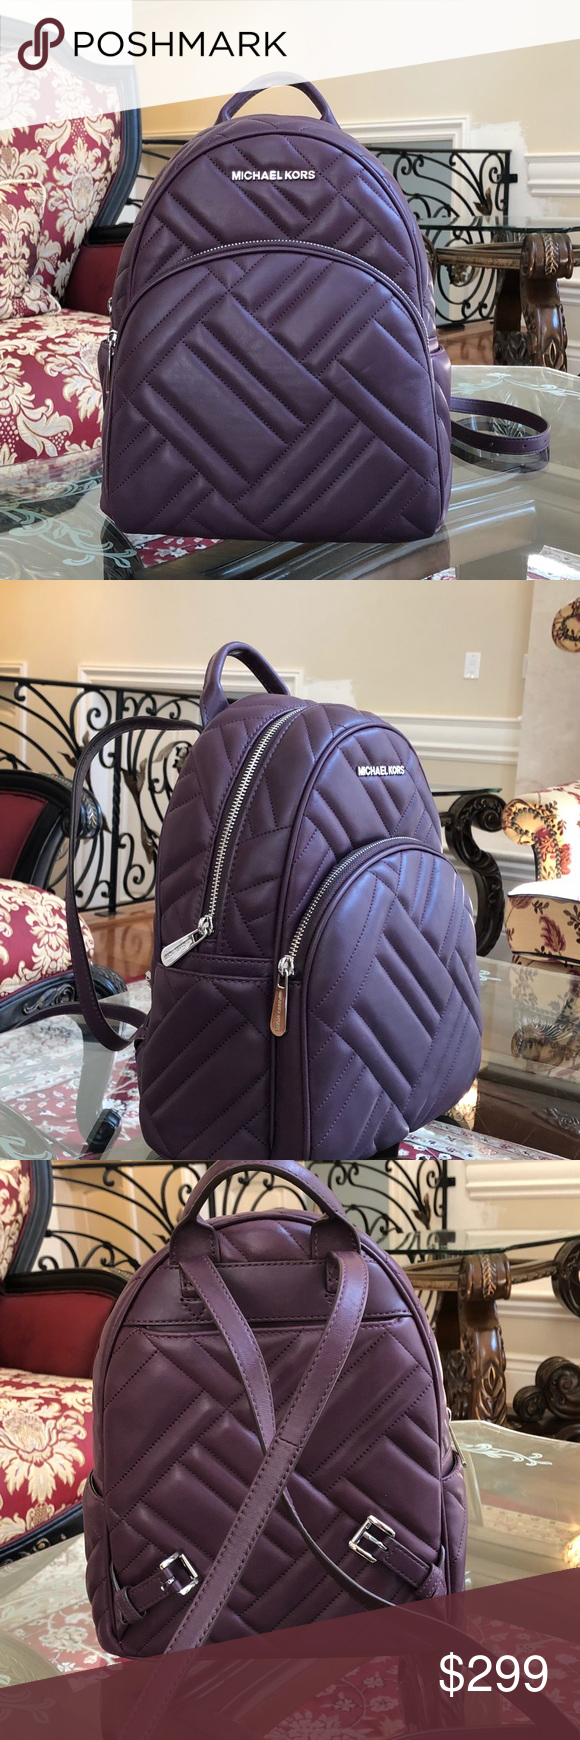 f716a18878fb NWT, MICHAEL KORS MEDIUM ABBEY QUILTED BACKPACK Guaranteed Authentic Michael  Kors Abbey Medium Chevron Quilted